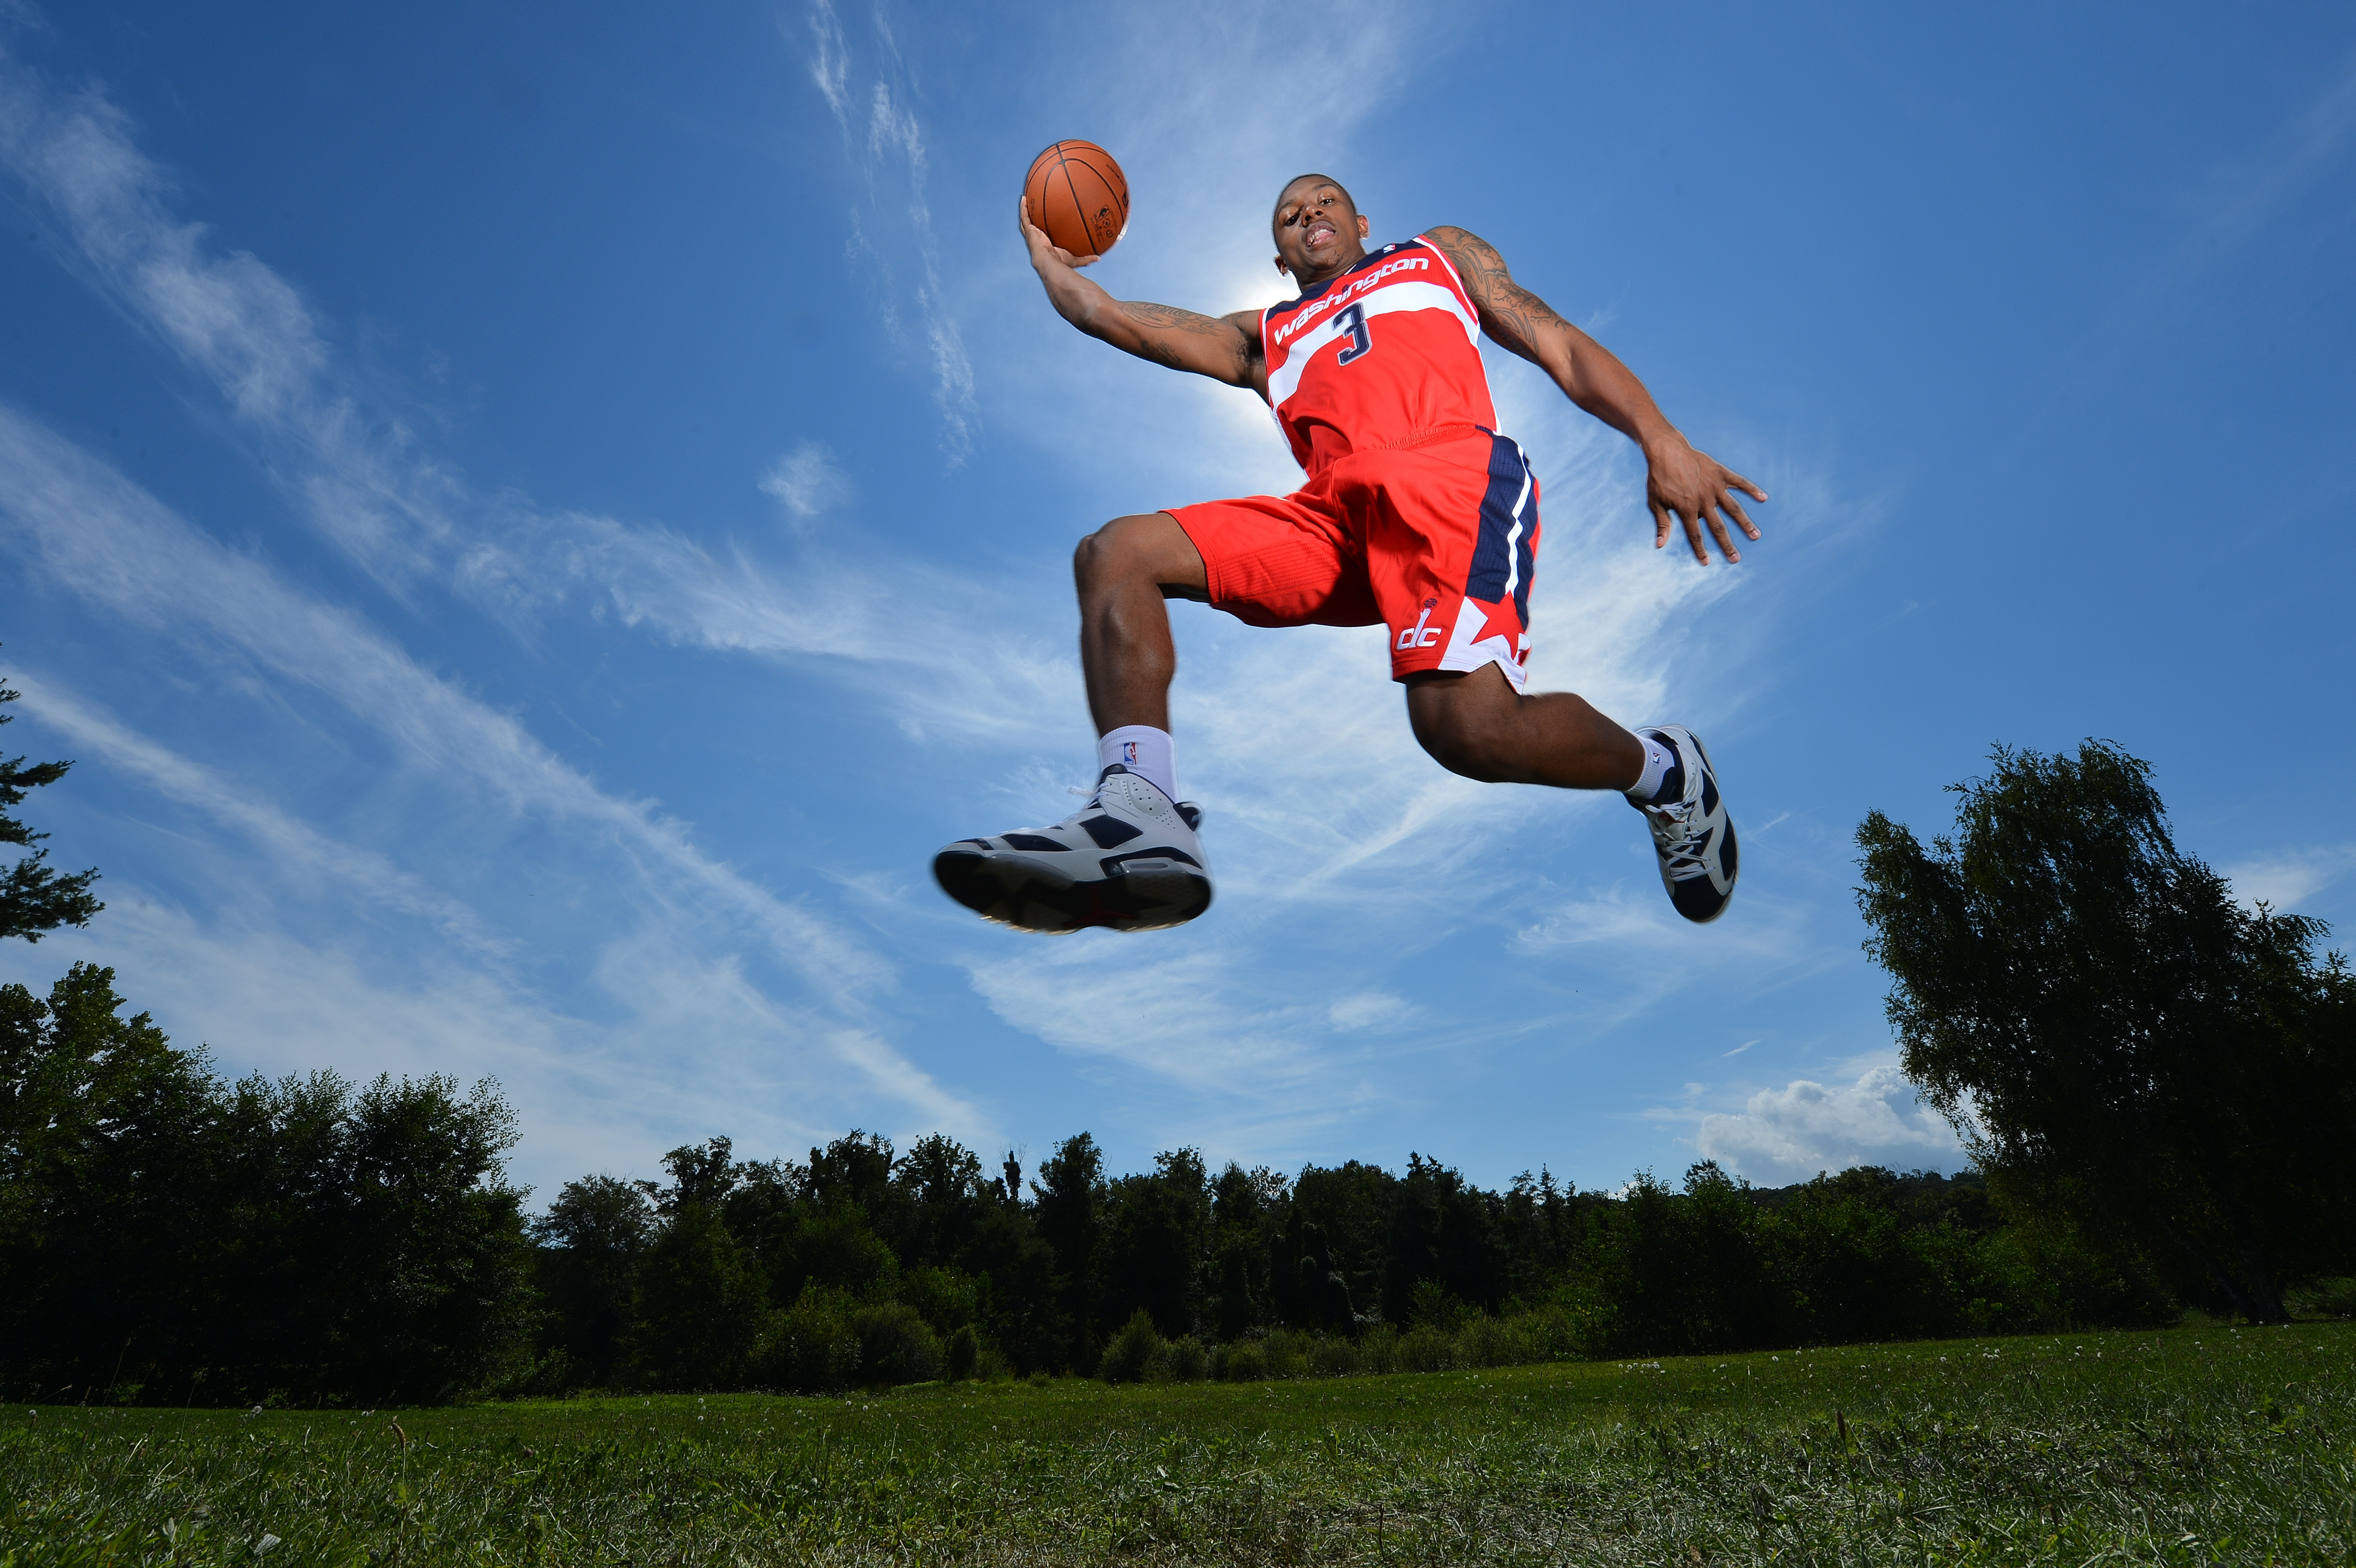 Bradley Beal Rookie Photo Shoot Washington Wizards